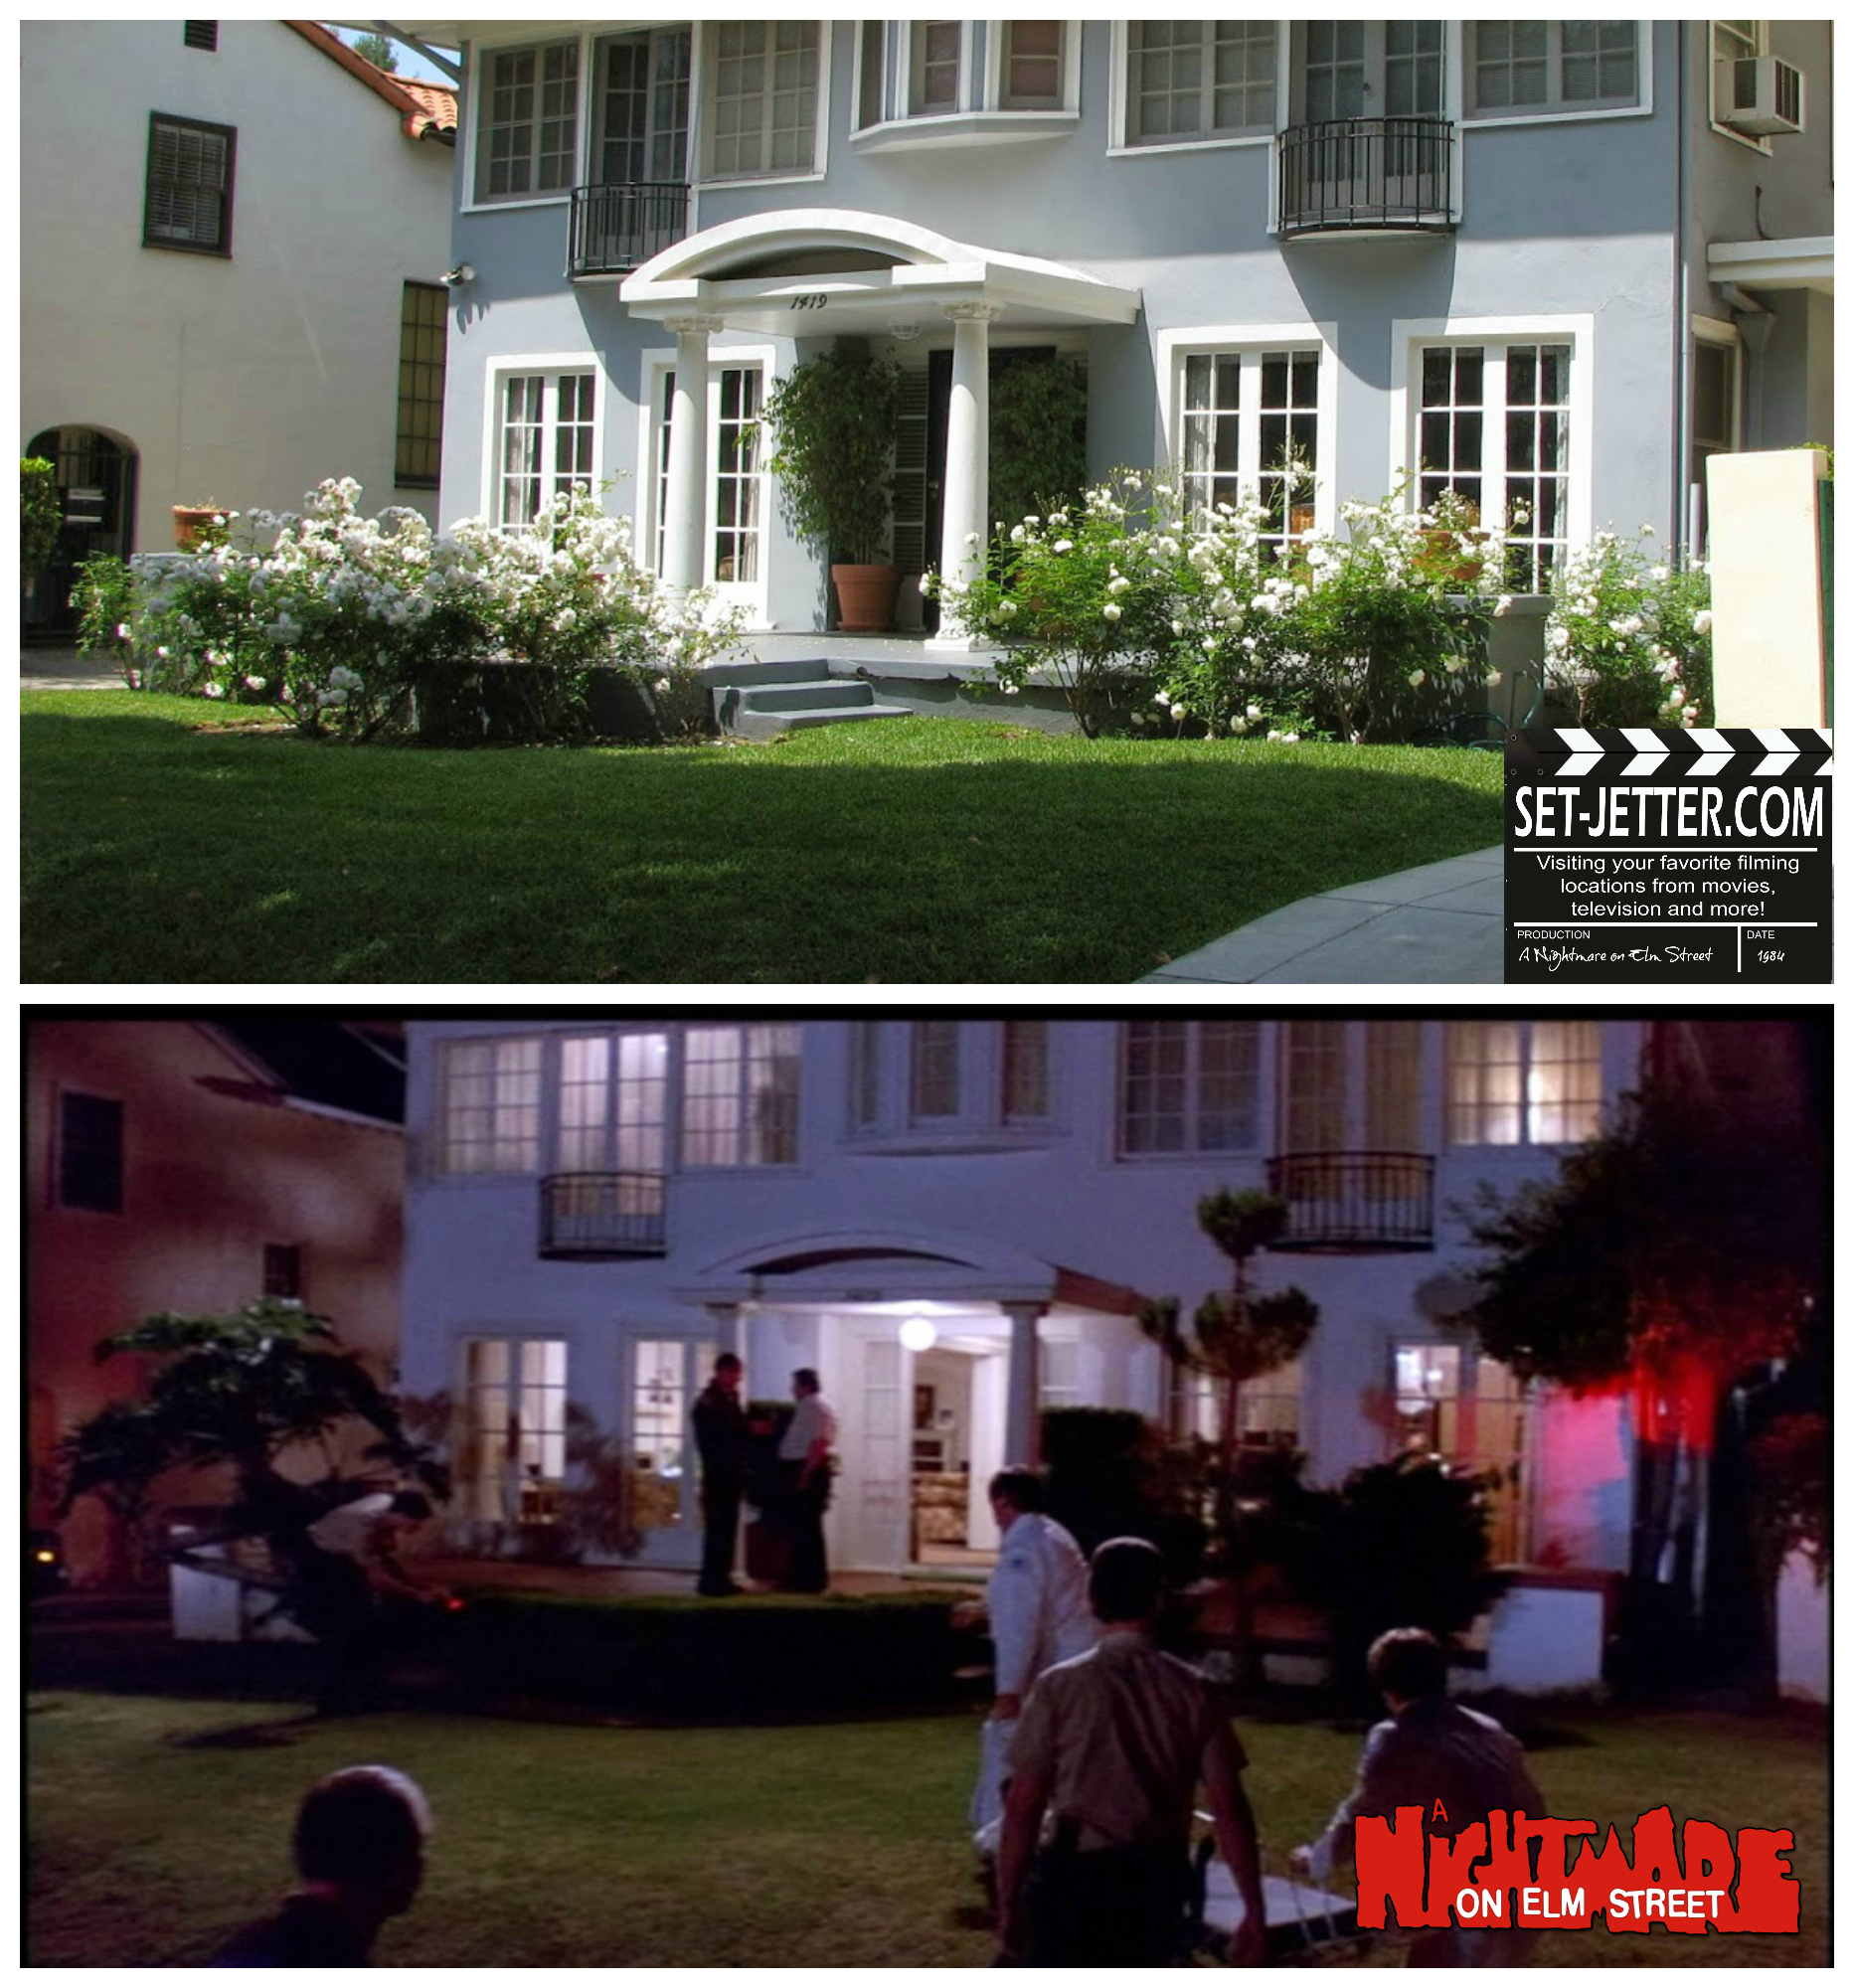 Nightmare on Elm Street comparison 30.jpg